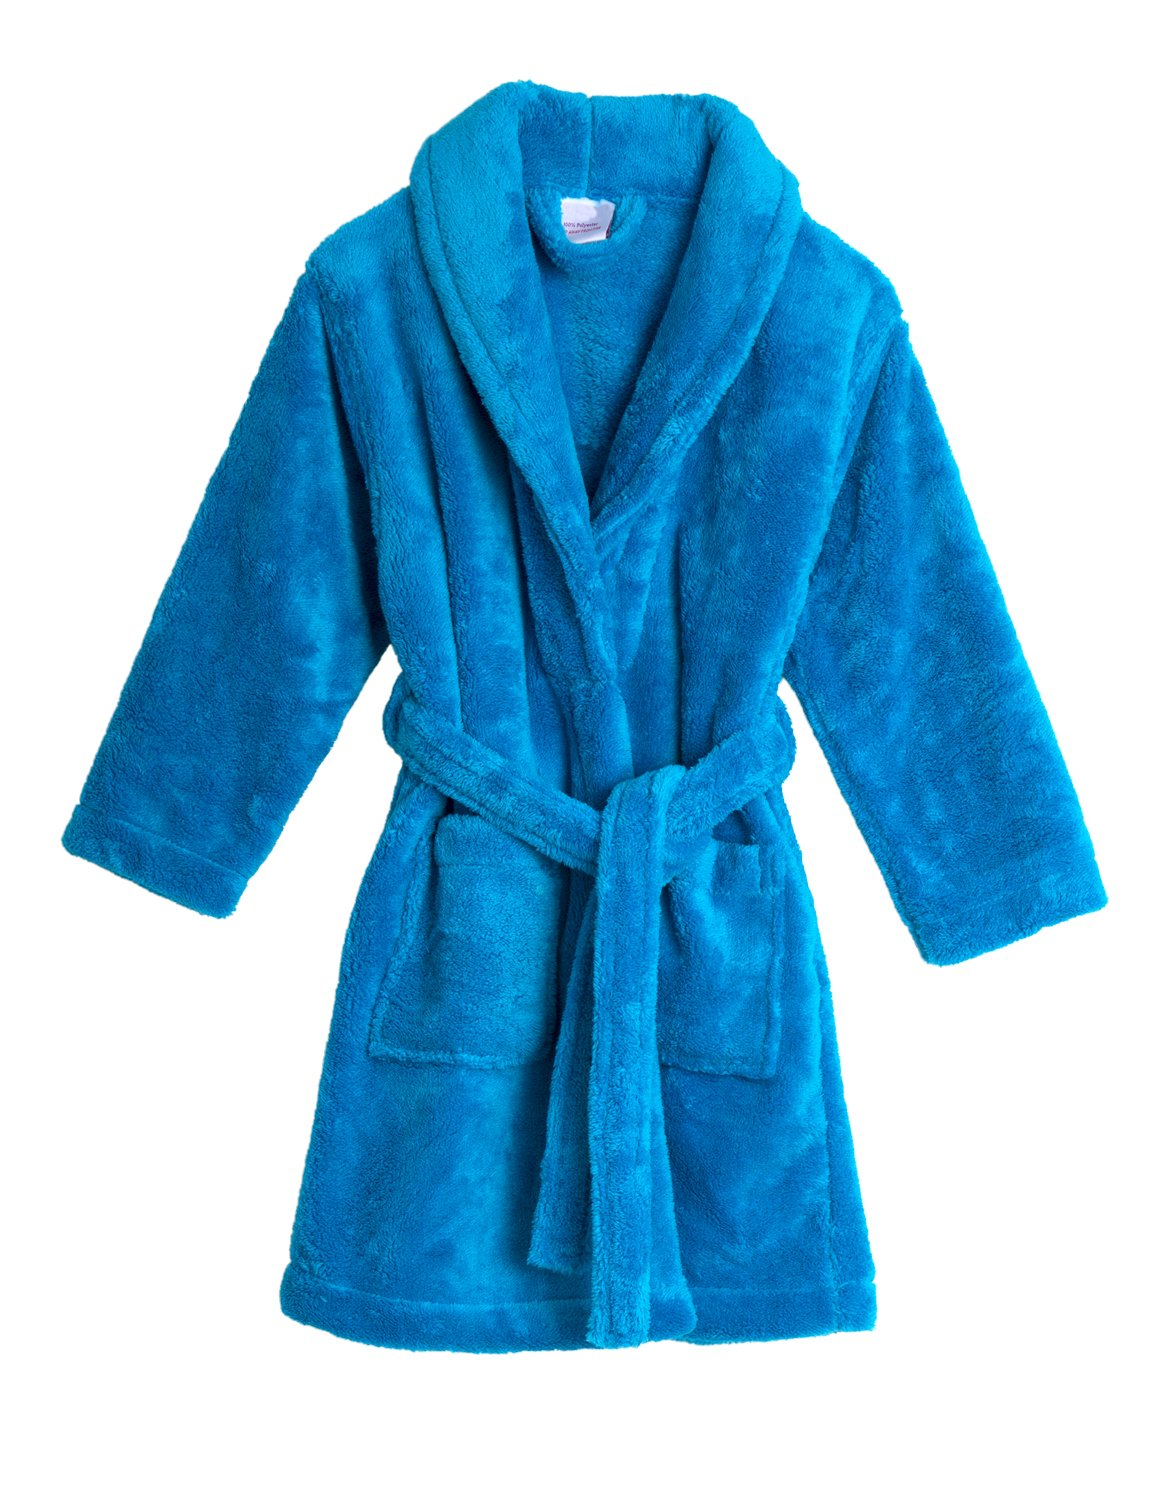 TowelSelections Big Girls' Robe, Kids Plush Shawl Fleece Bathrobe Size 8 Cyan Blue